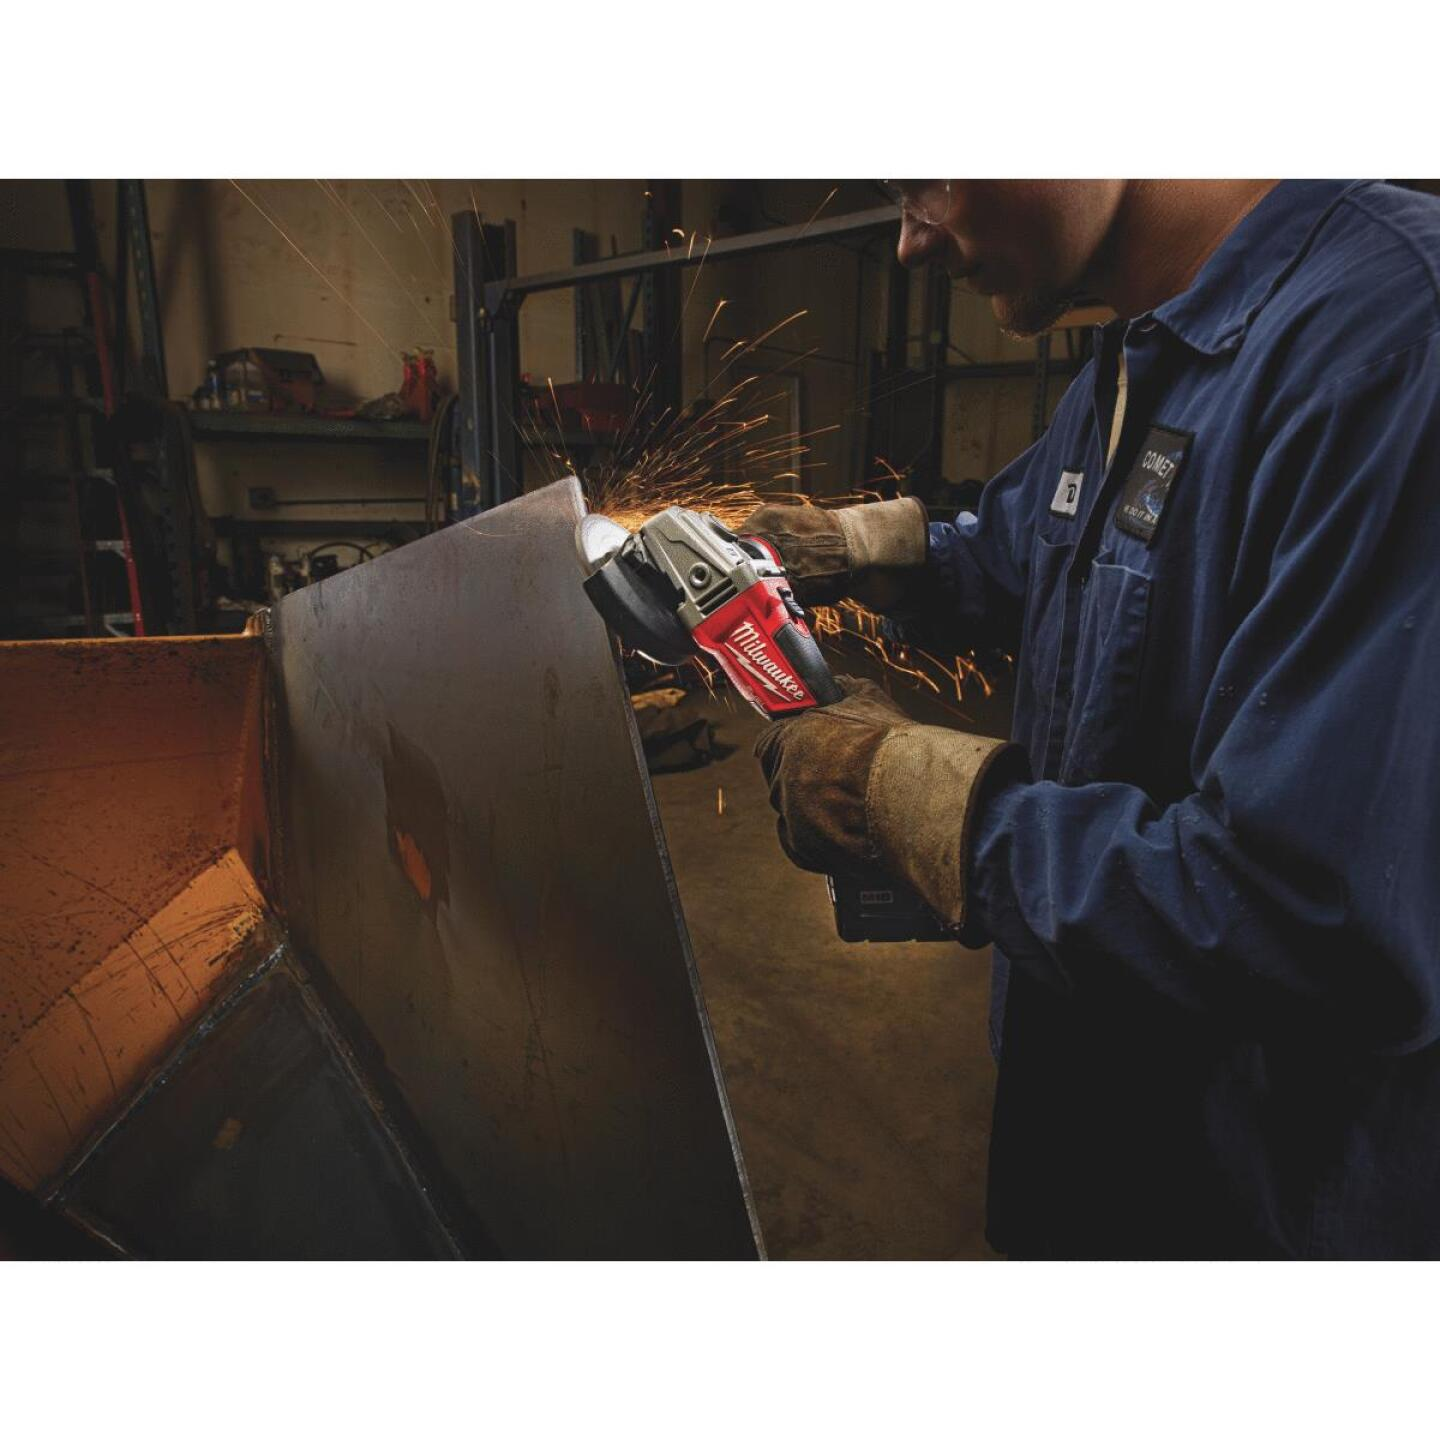 Milwaukee M18 FUEL 18 Volt Lithium-Ion Brushless 4-1/2 In. - 5 in. Cordless Angle Grinder, Slide Switch Lock-On (Bare Tool) Image 2